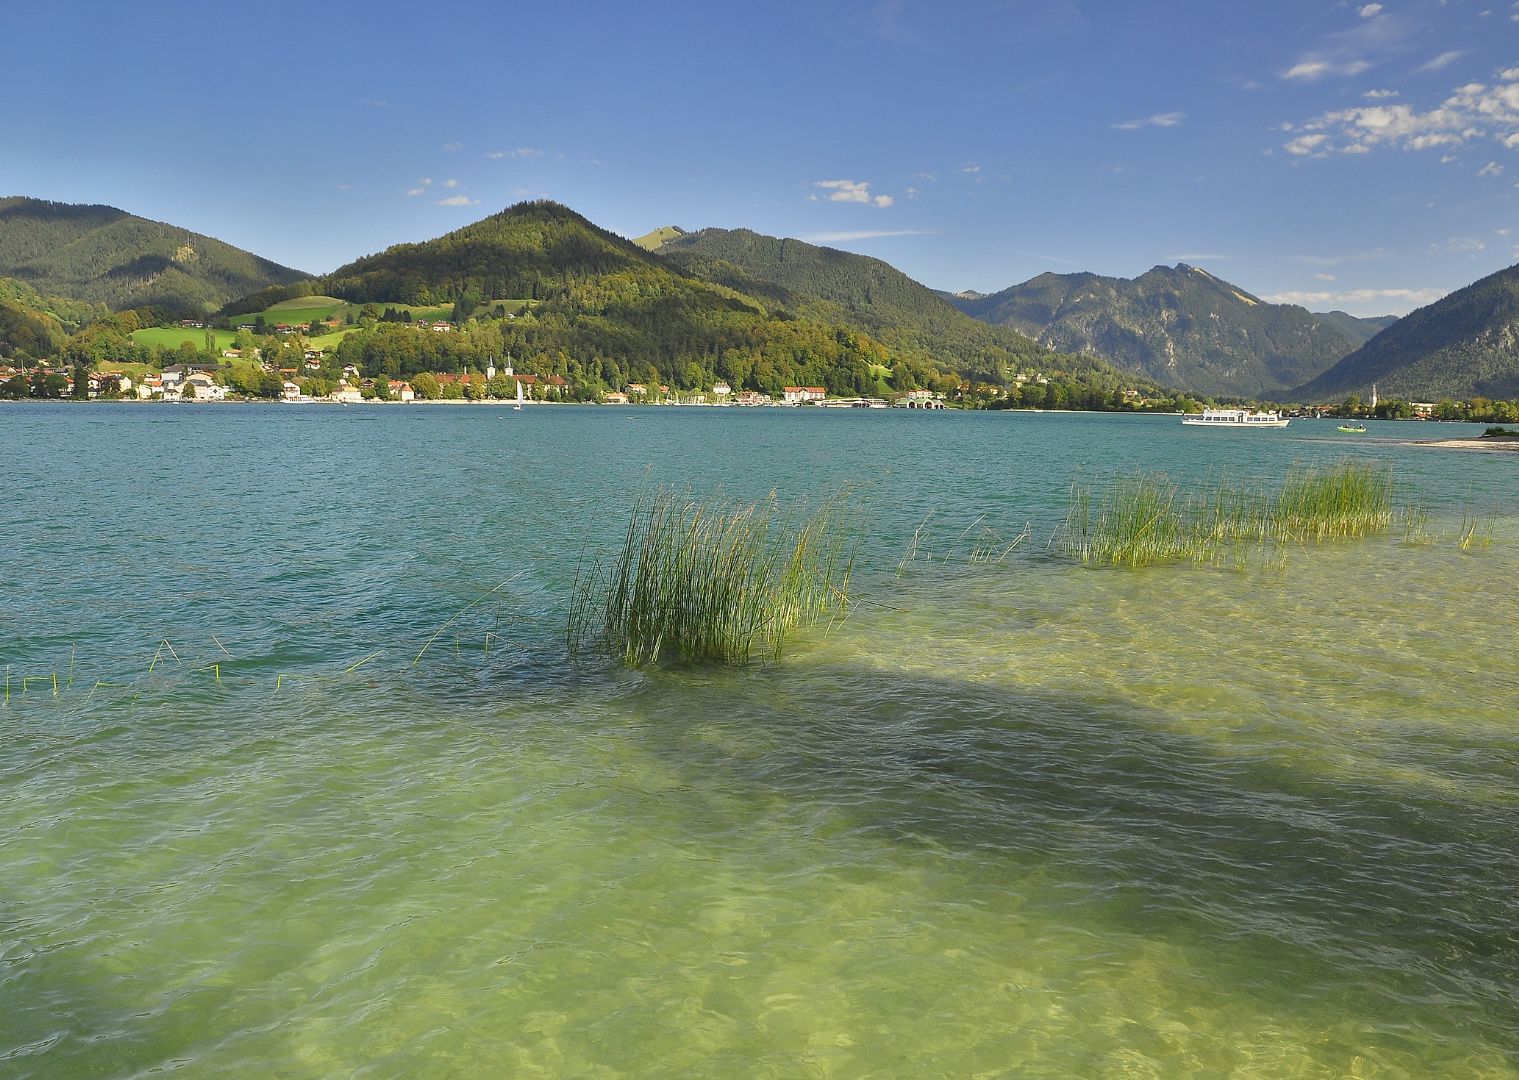 leisurecyclingbavaria3.jpg - Germany - Bavarian Lakes - Self-Guided Family Cycling Holiday - Family Cycling